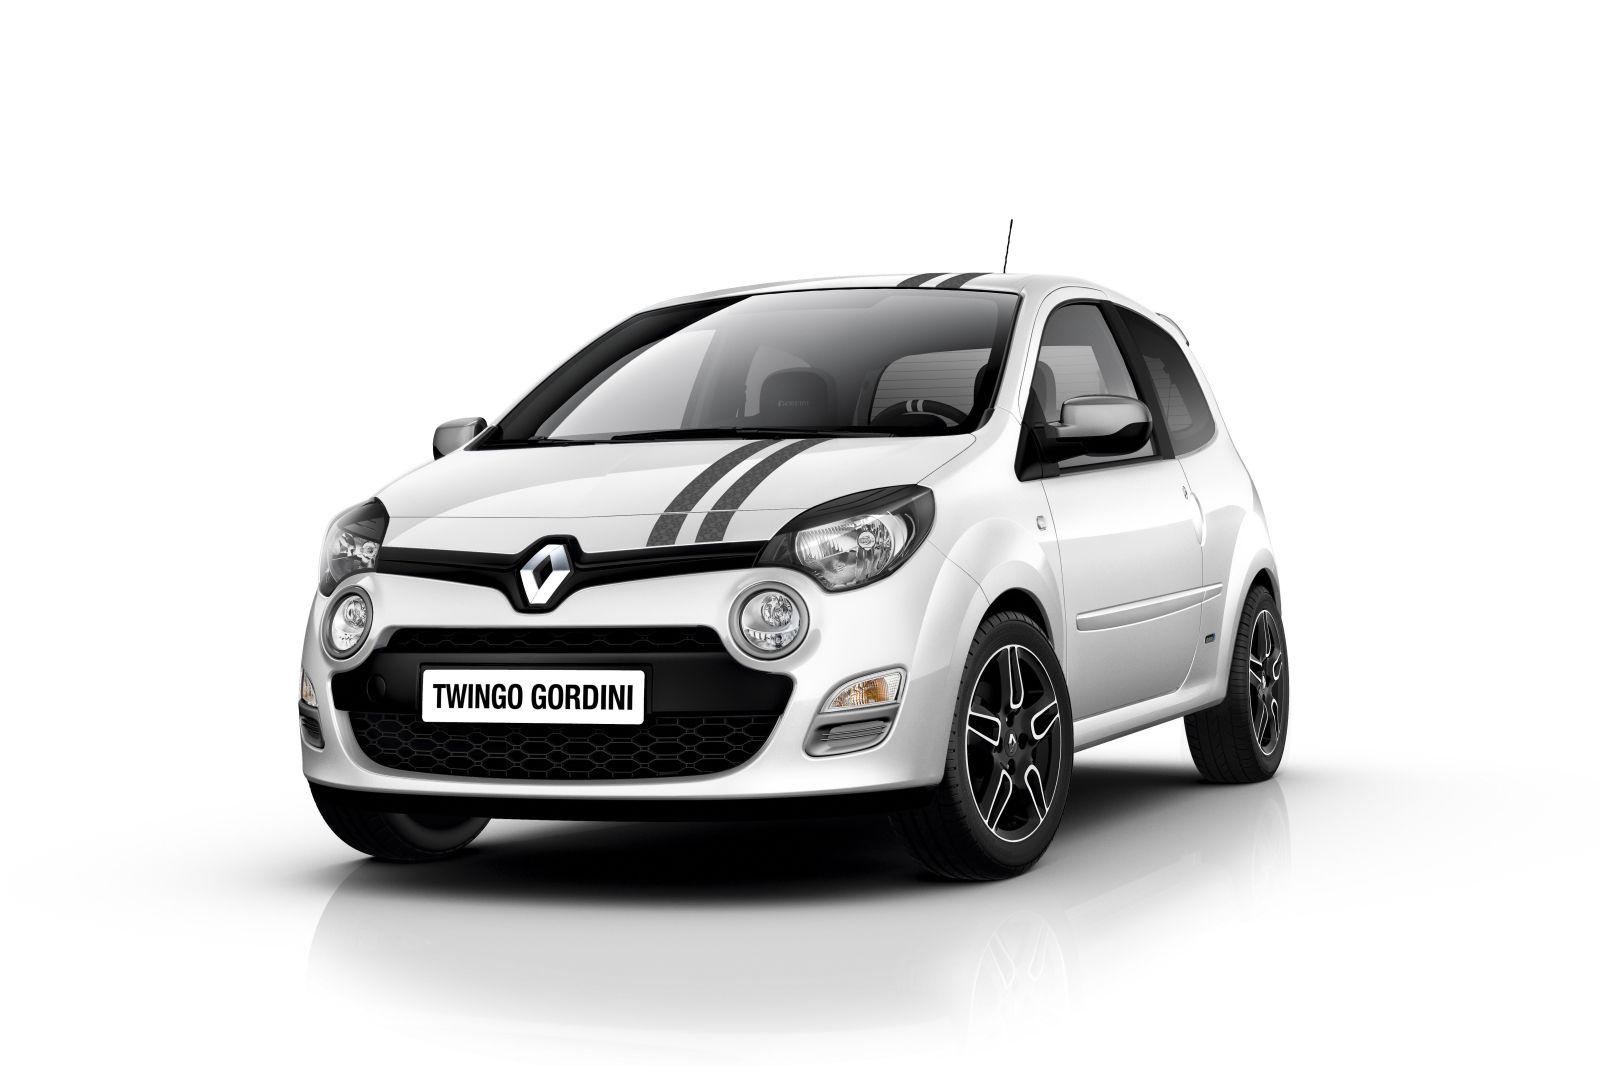 revista coche nuevo renault twingo 2012 todas las caracter sticas t cnicas gama y datos que. Black Bedroom Furniture Sets. Home Design Ideas